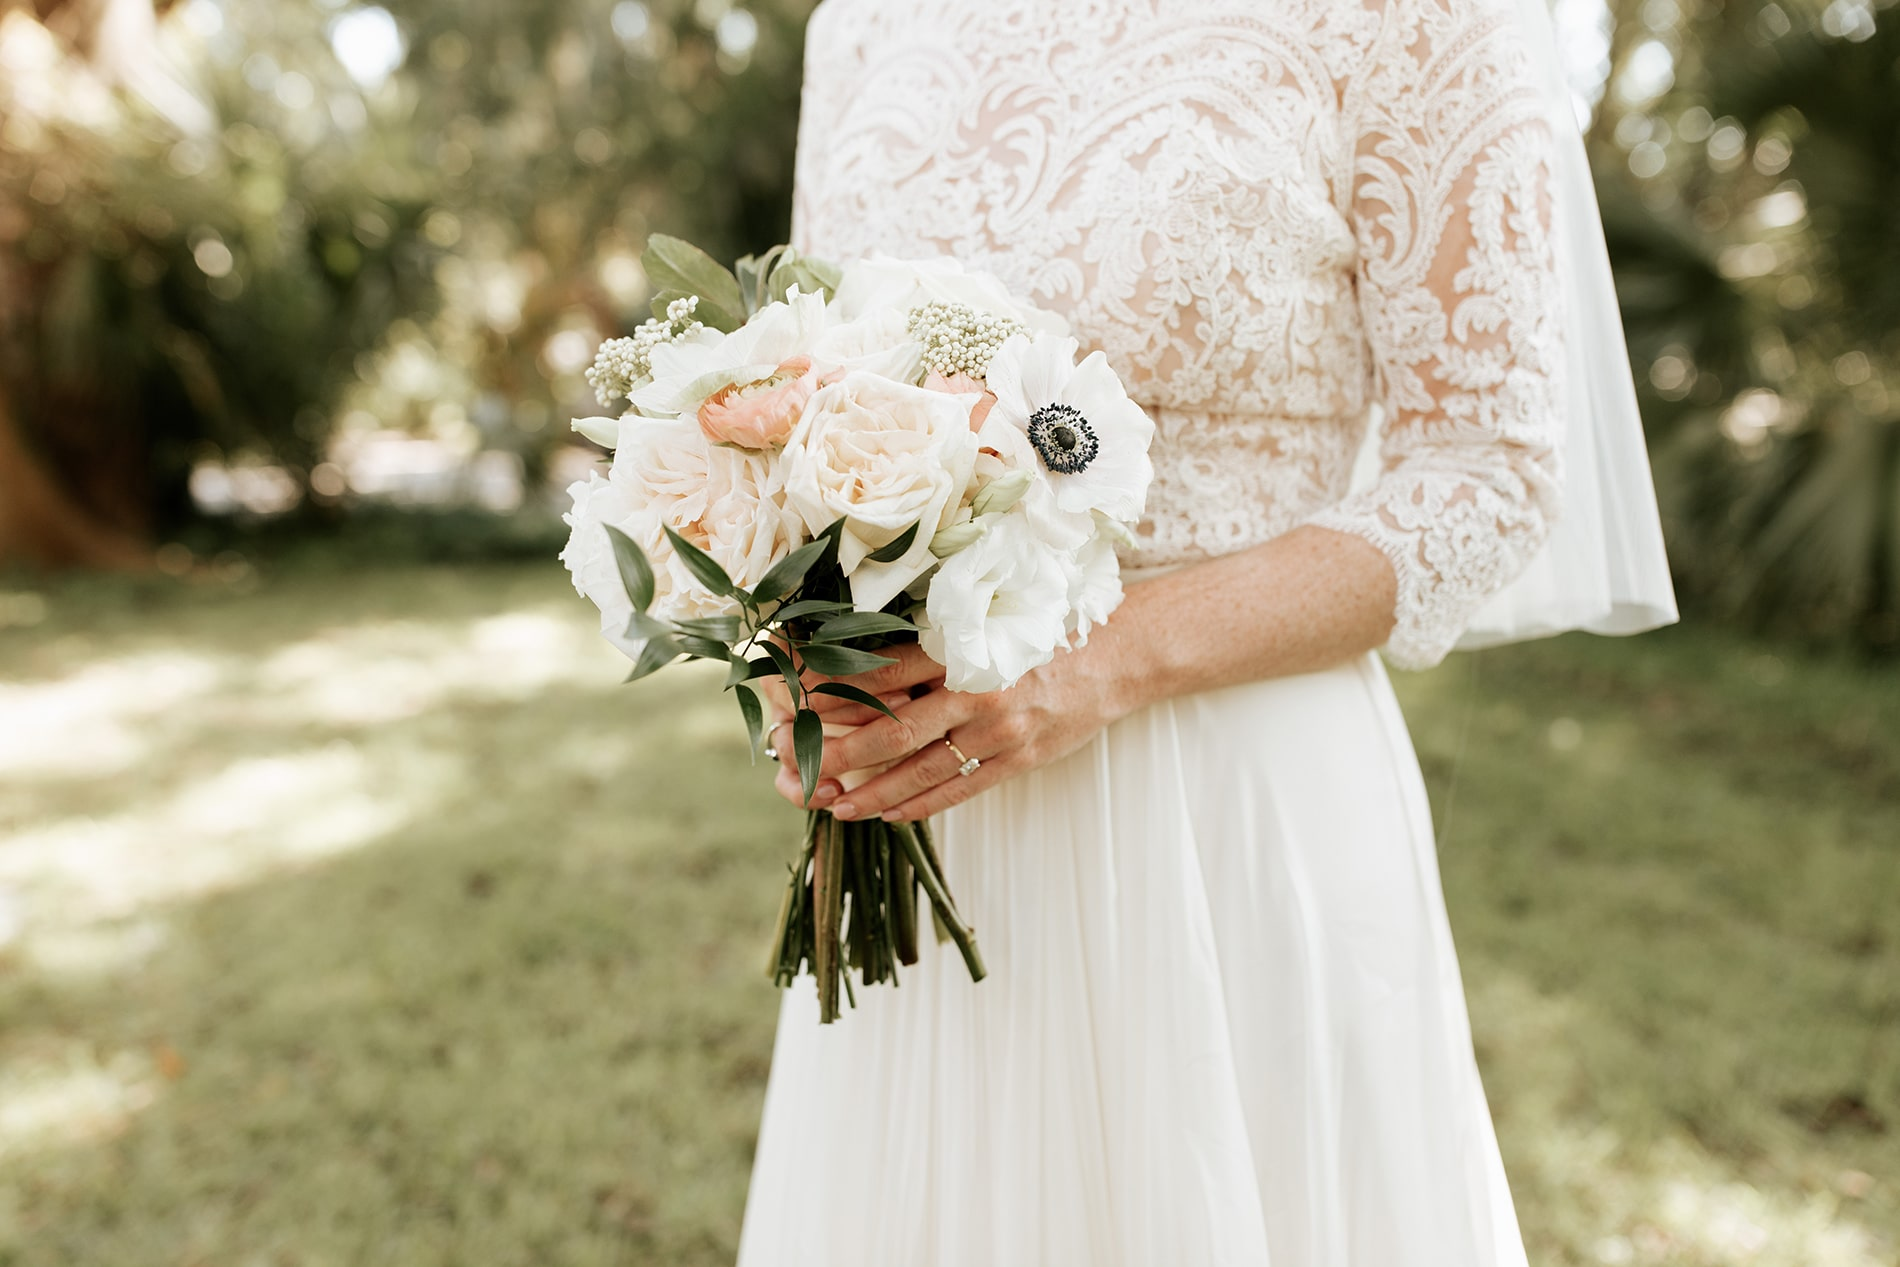 lowcountry-kitchen-catering-beaufort-sc-mary-grace-and-judd-kennedy-wedding-ceremony-bride-bouquet-min.jpg